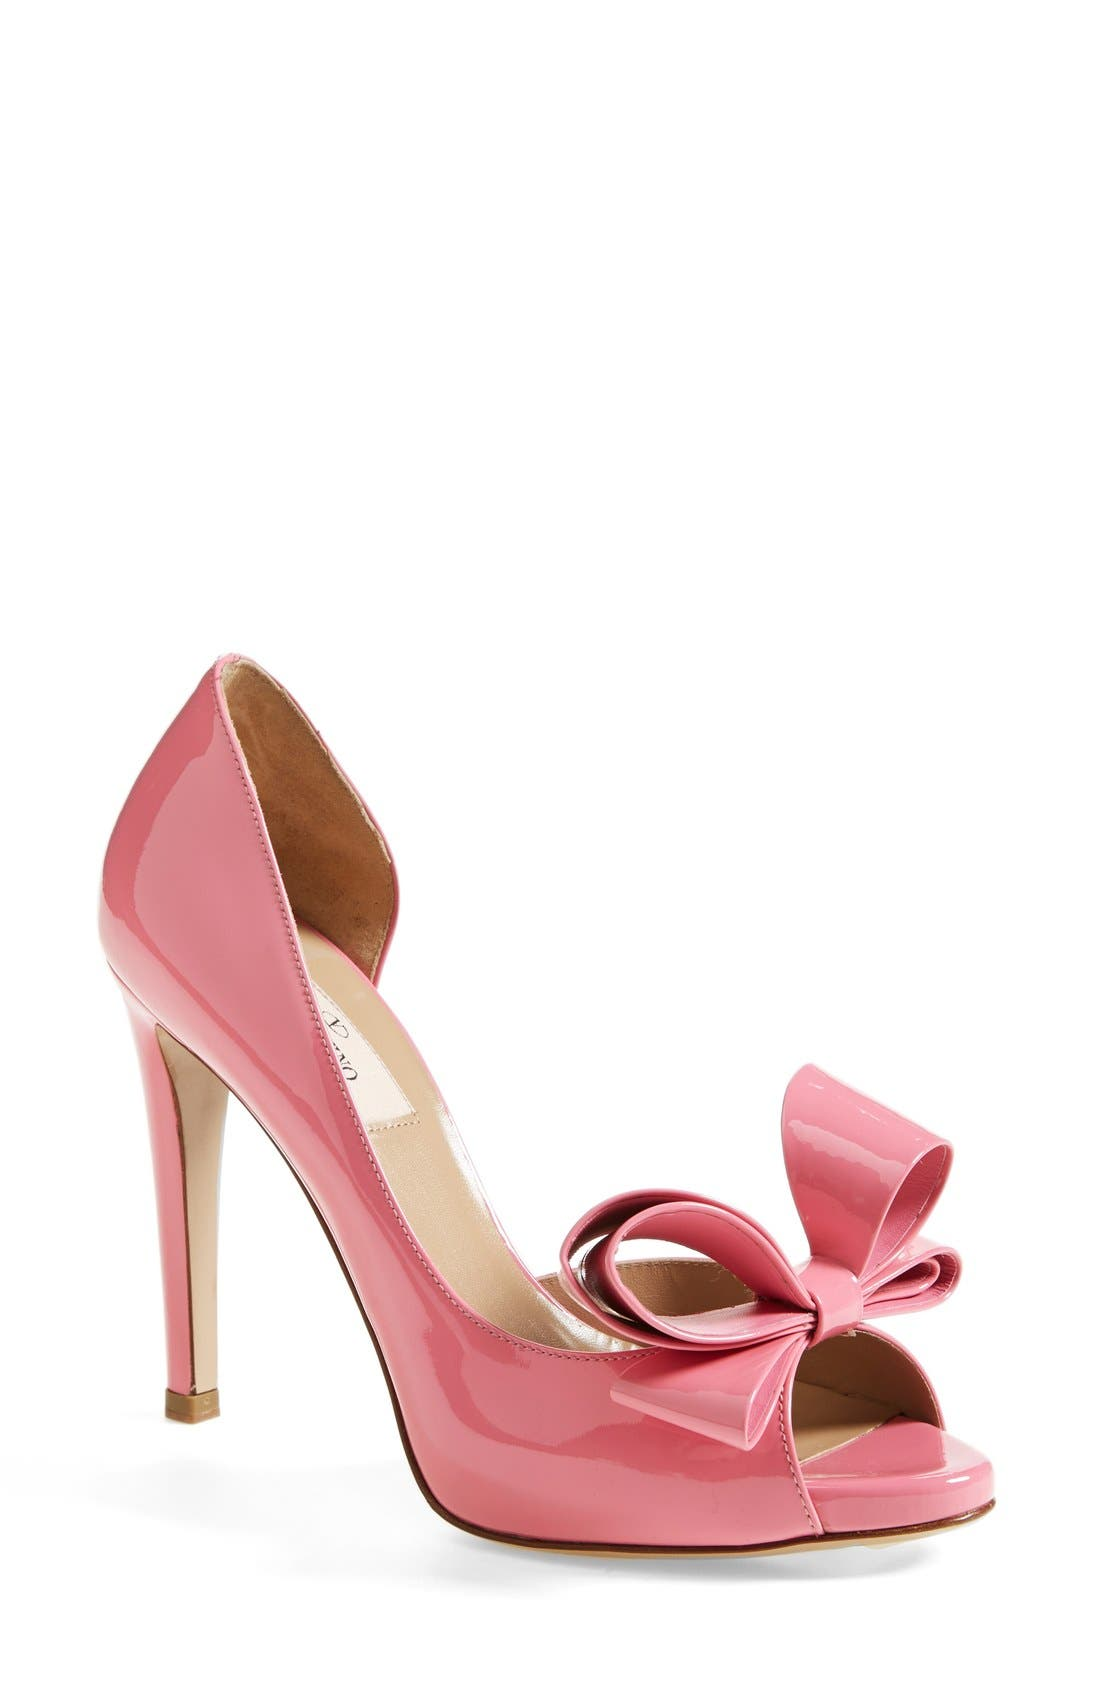 Alternate Image 1 Selected - Valentino 'Couture Bow' d'Orsay Pump (Women)